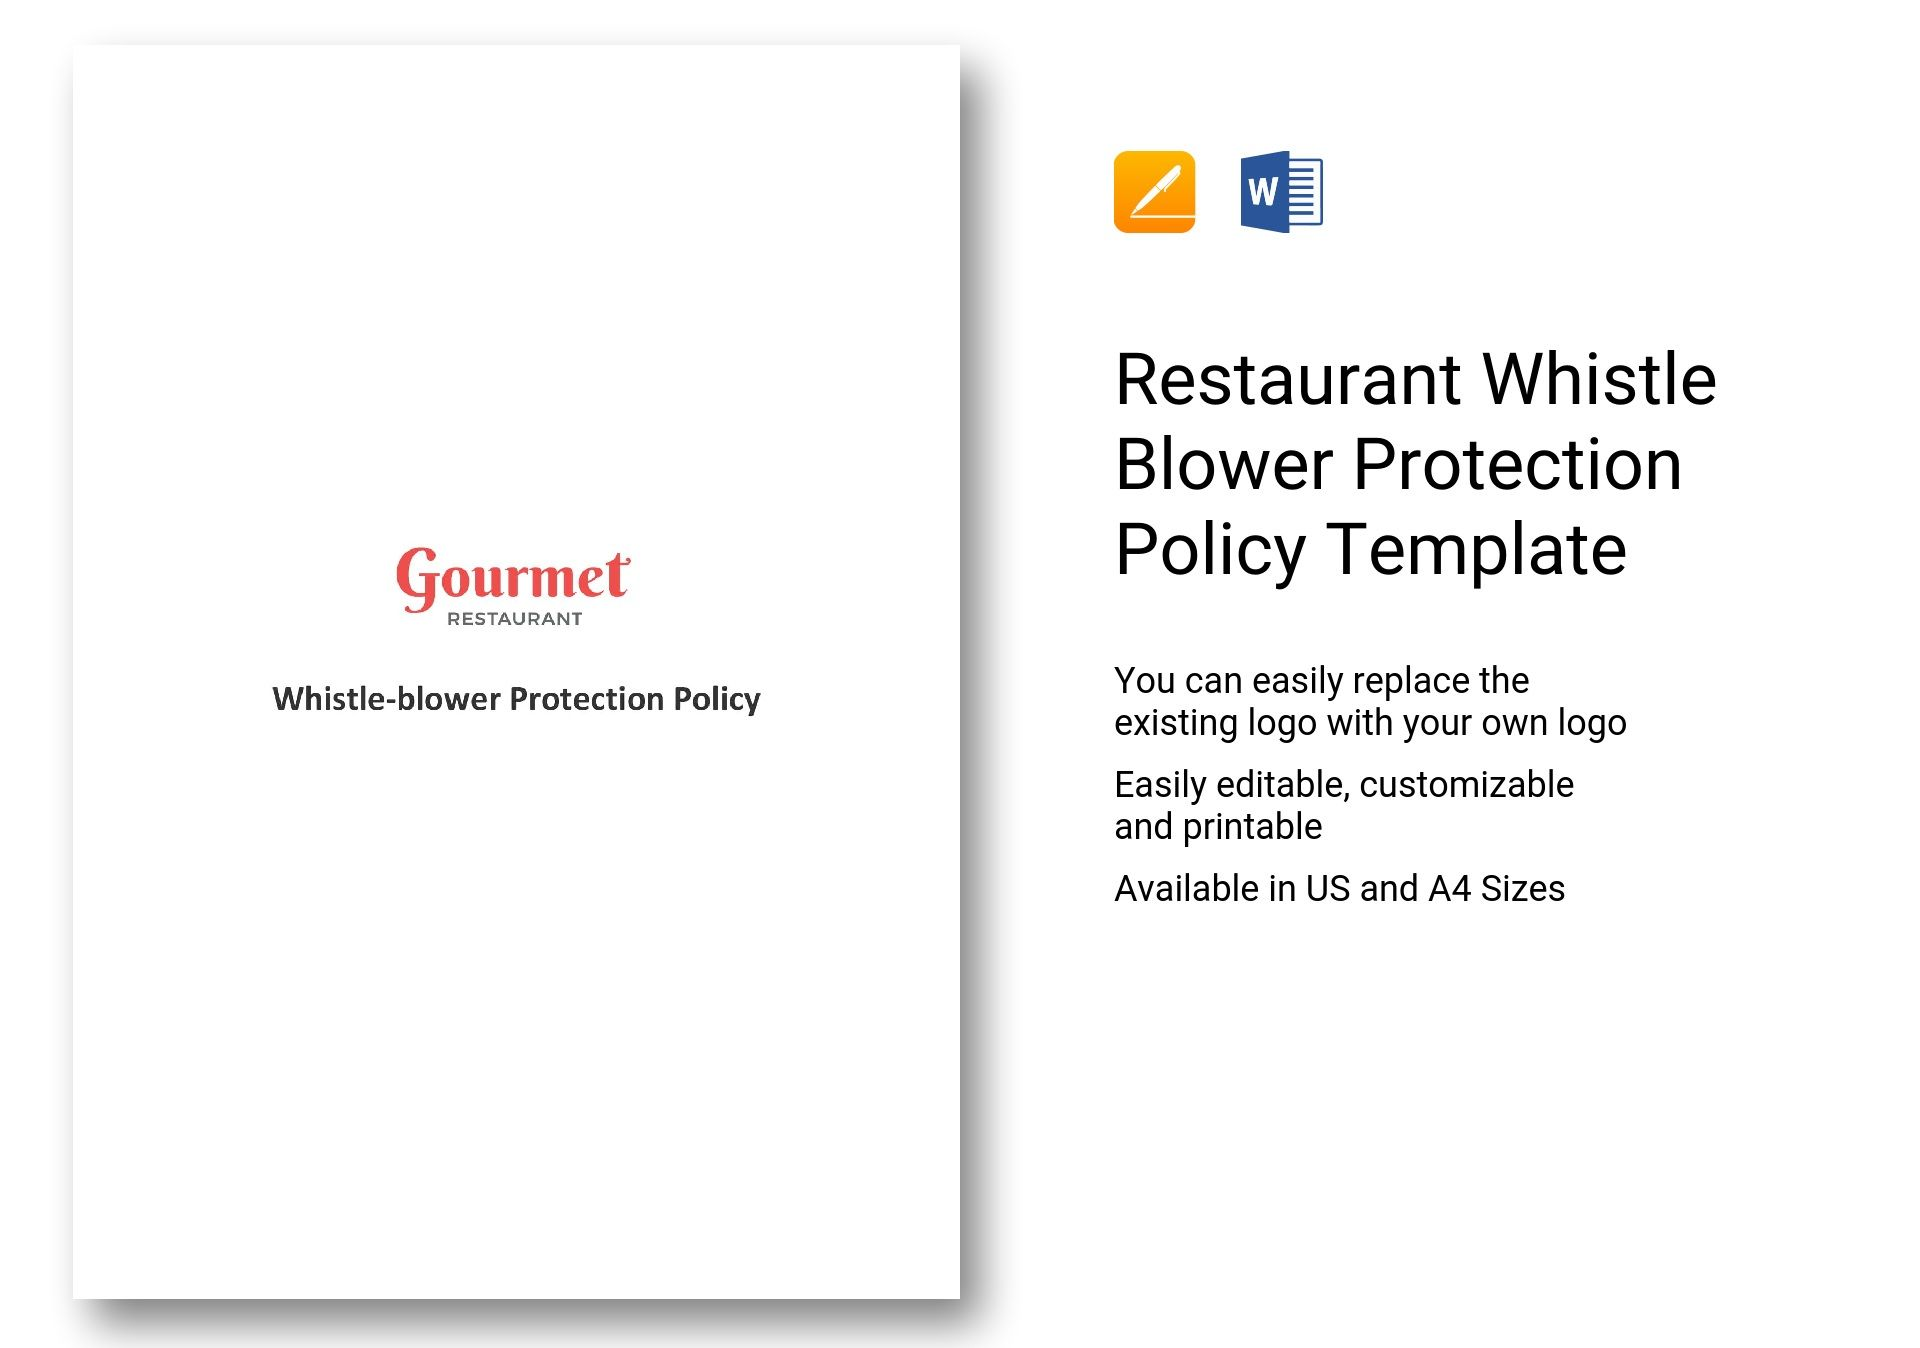 Restaurant Whistle Blower Protection Policy